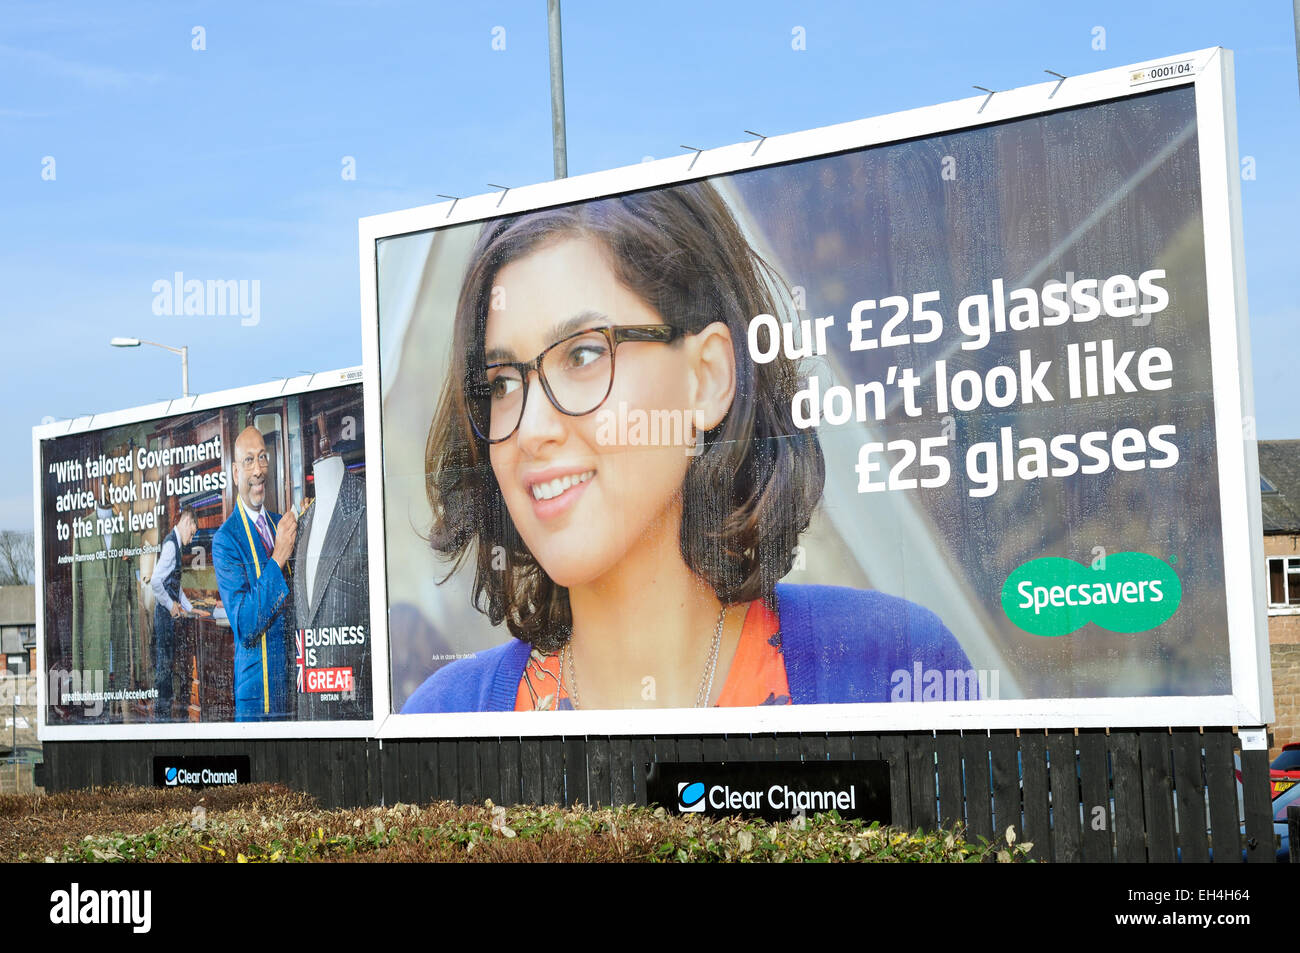 specsavers billboard advertising mansfield uk stock photo  specsavers billboard advertising mansfield uk